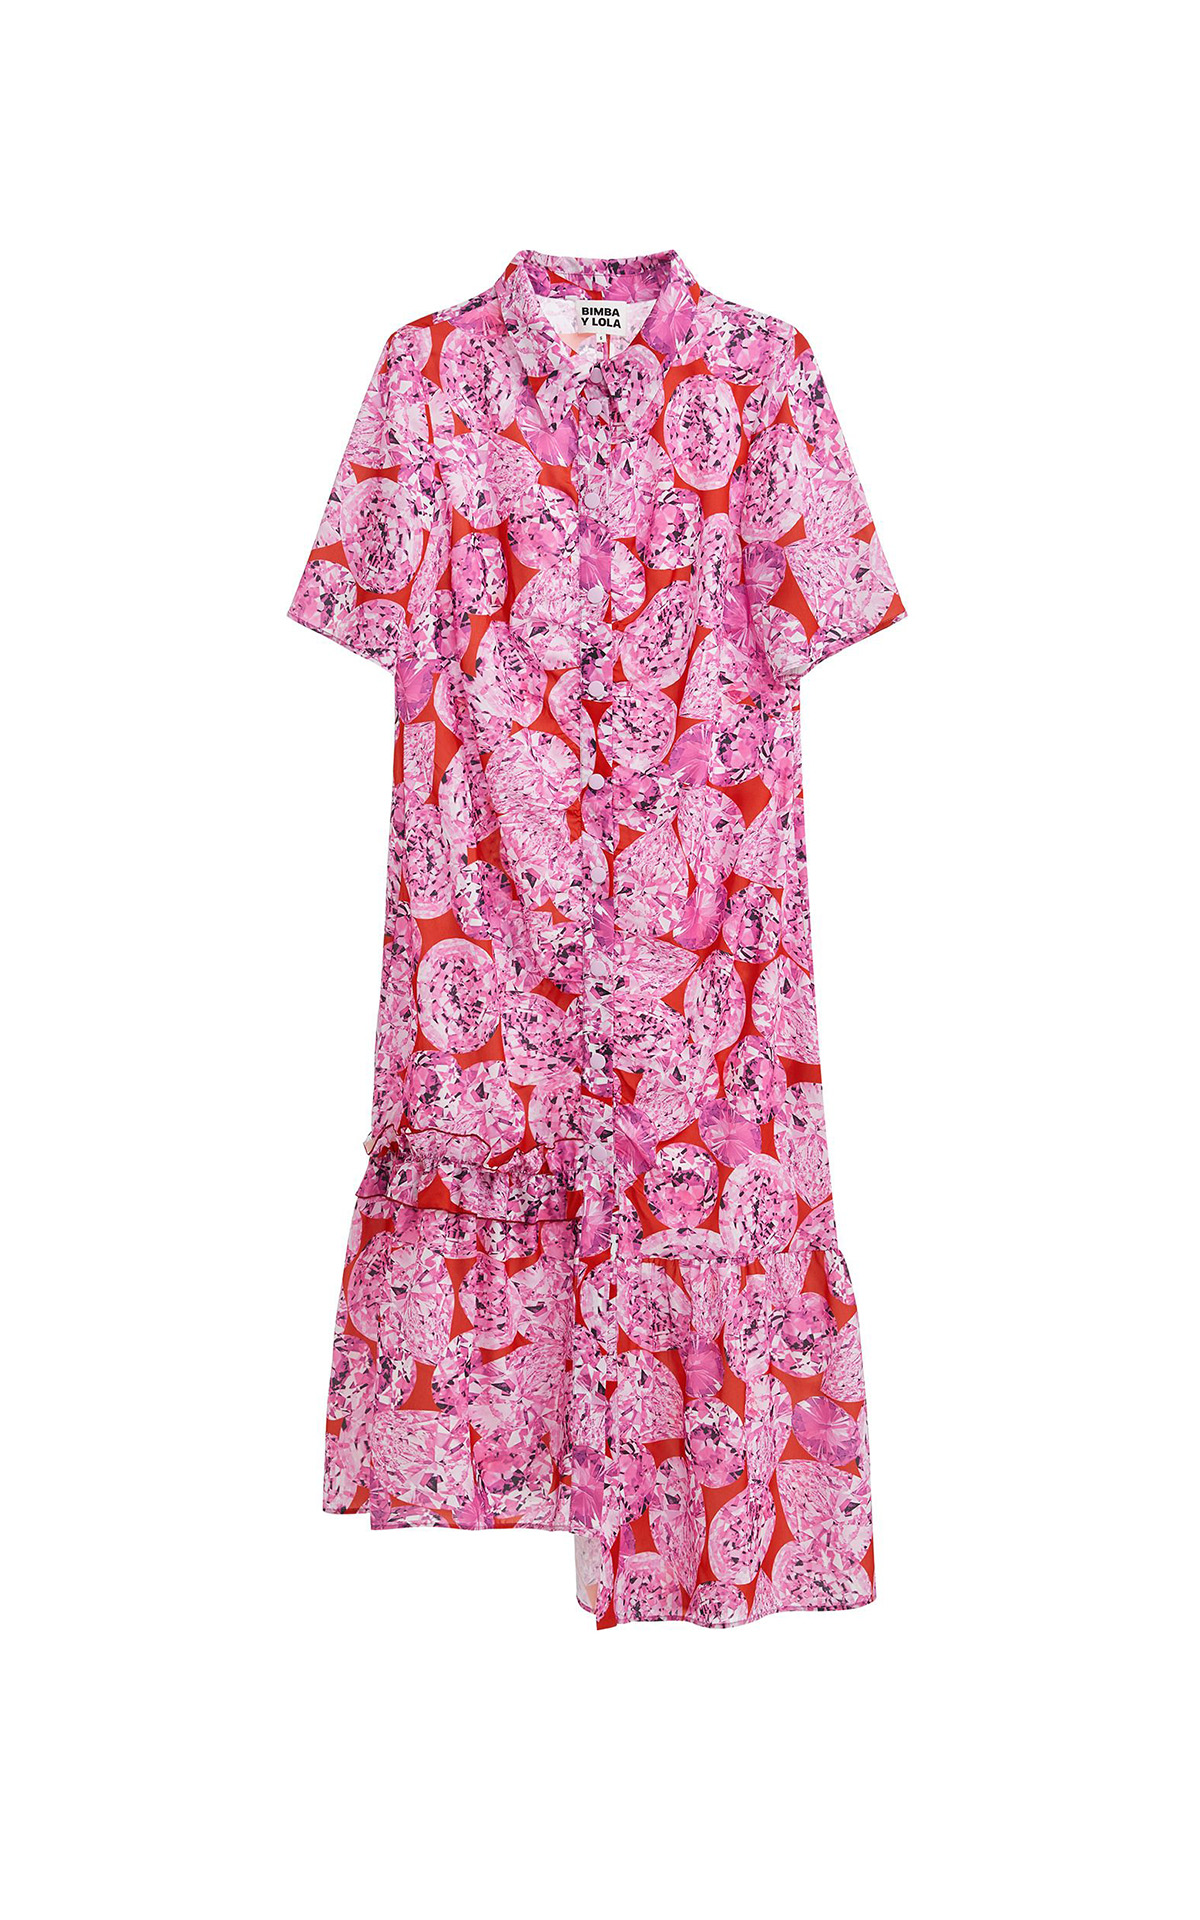 Pink flowered dress Bimba y Lola